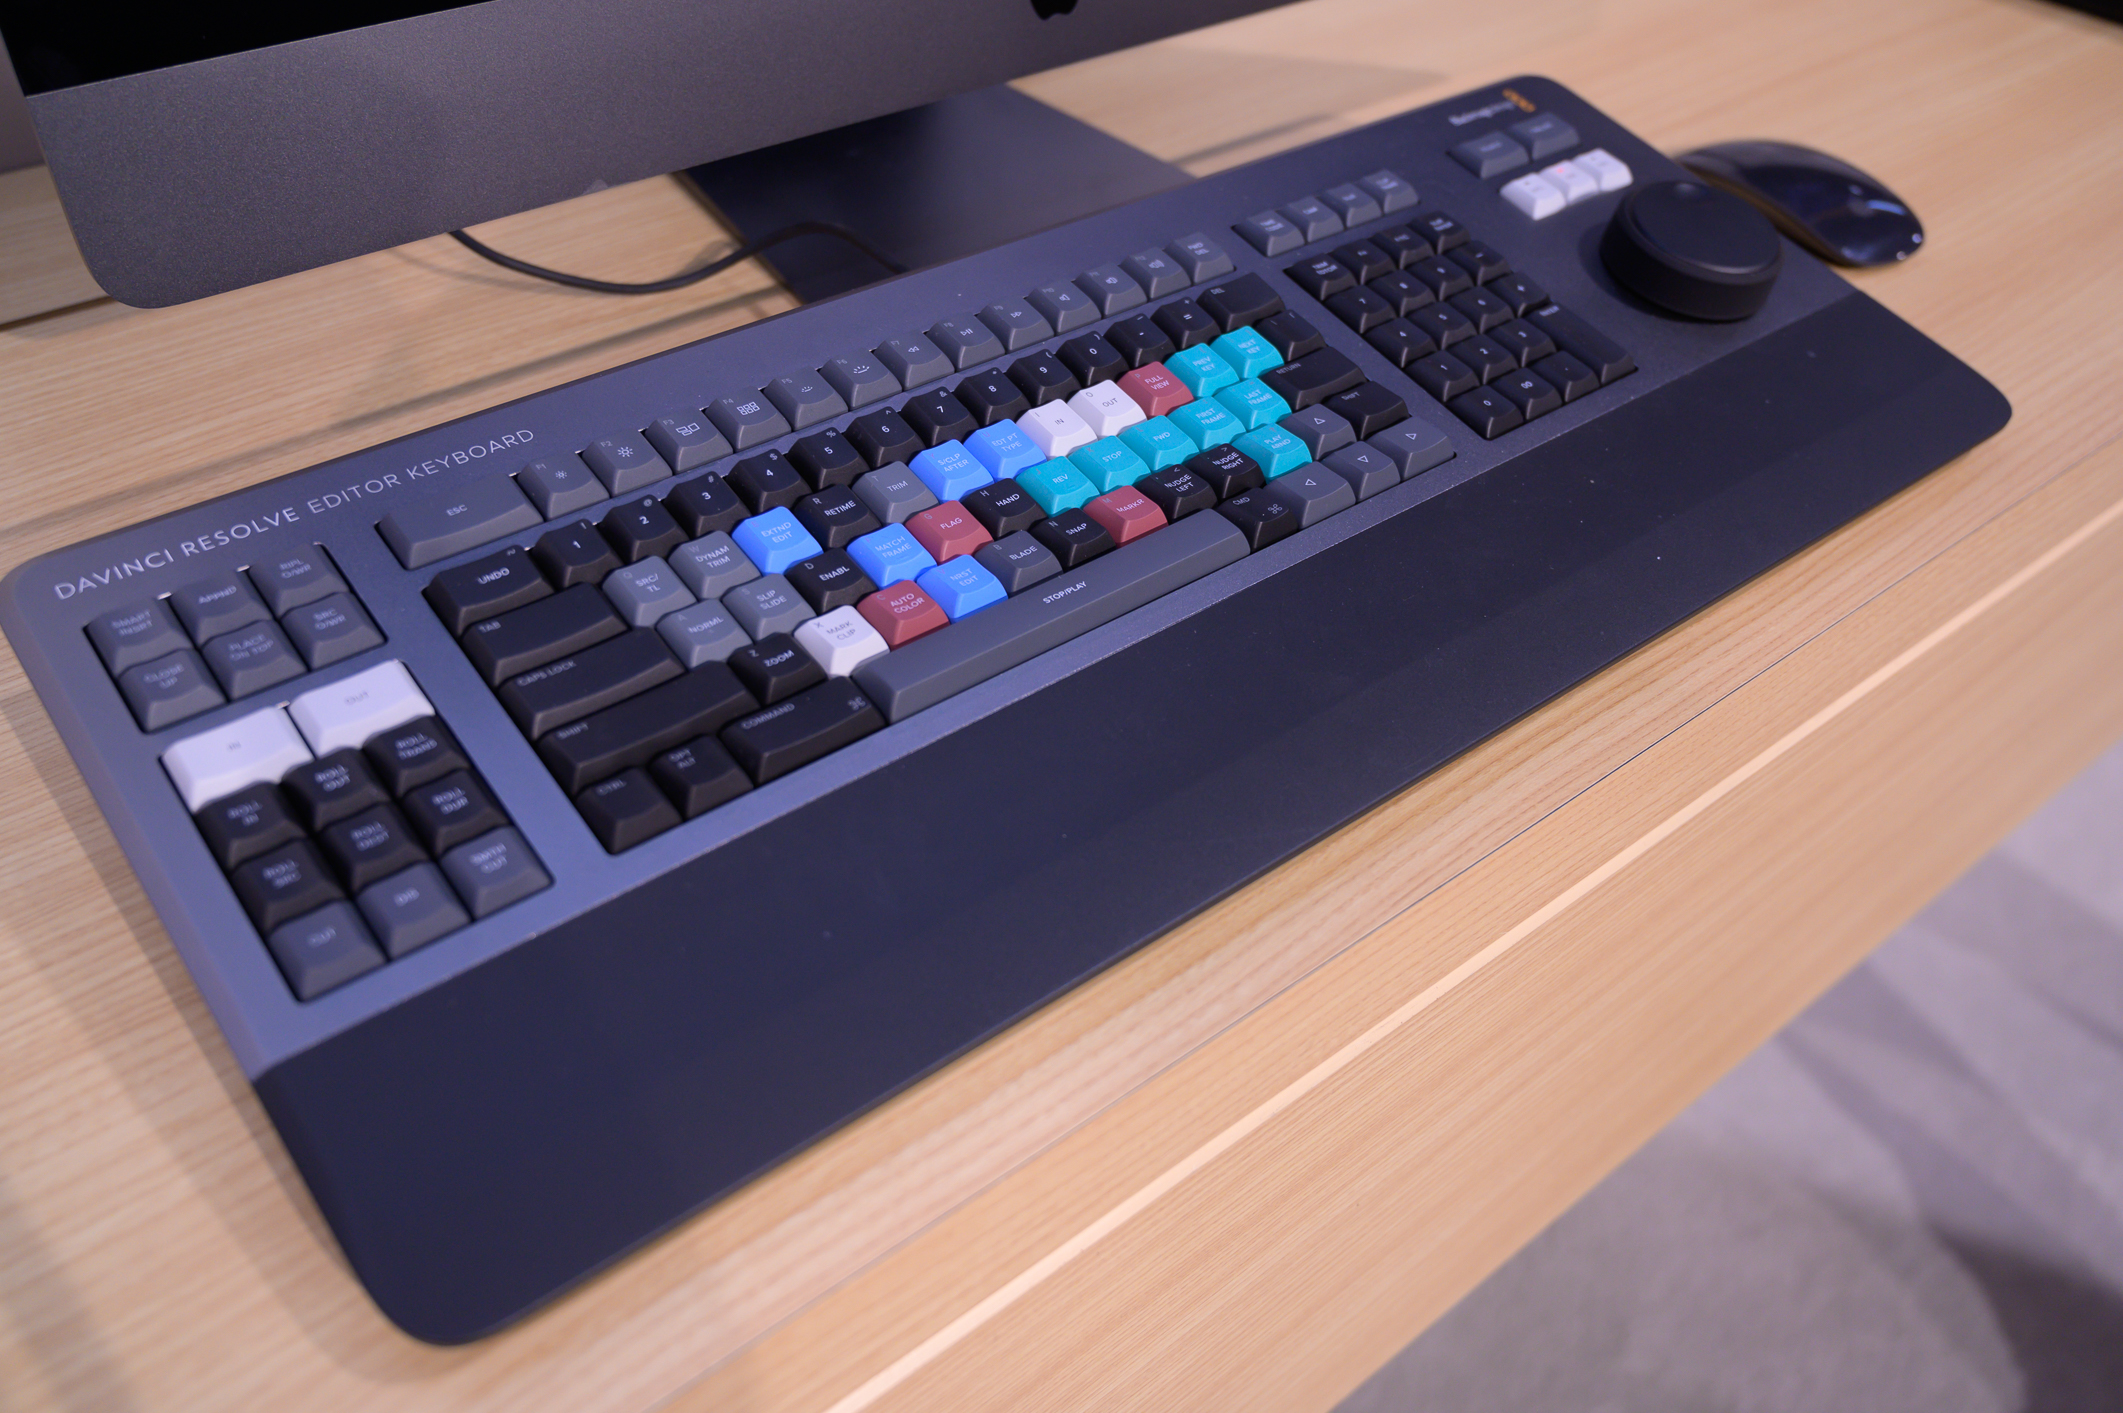 DaVinci Resolve Editor Keyboard from side